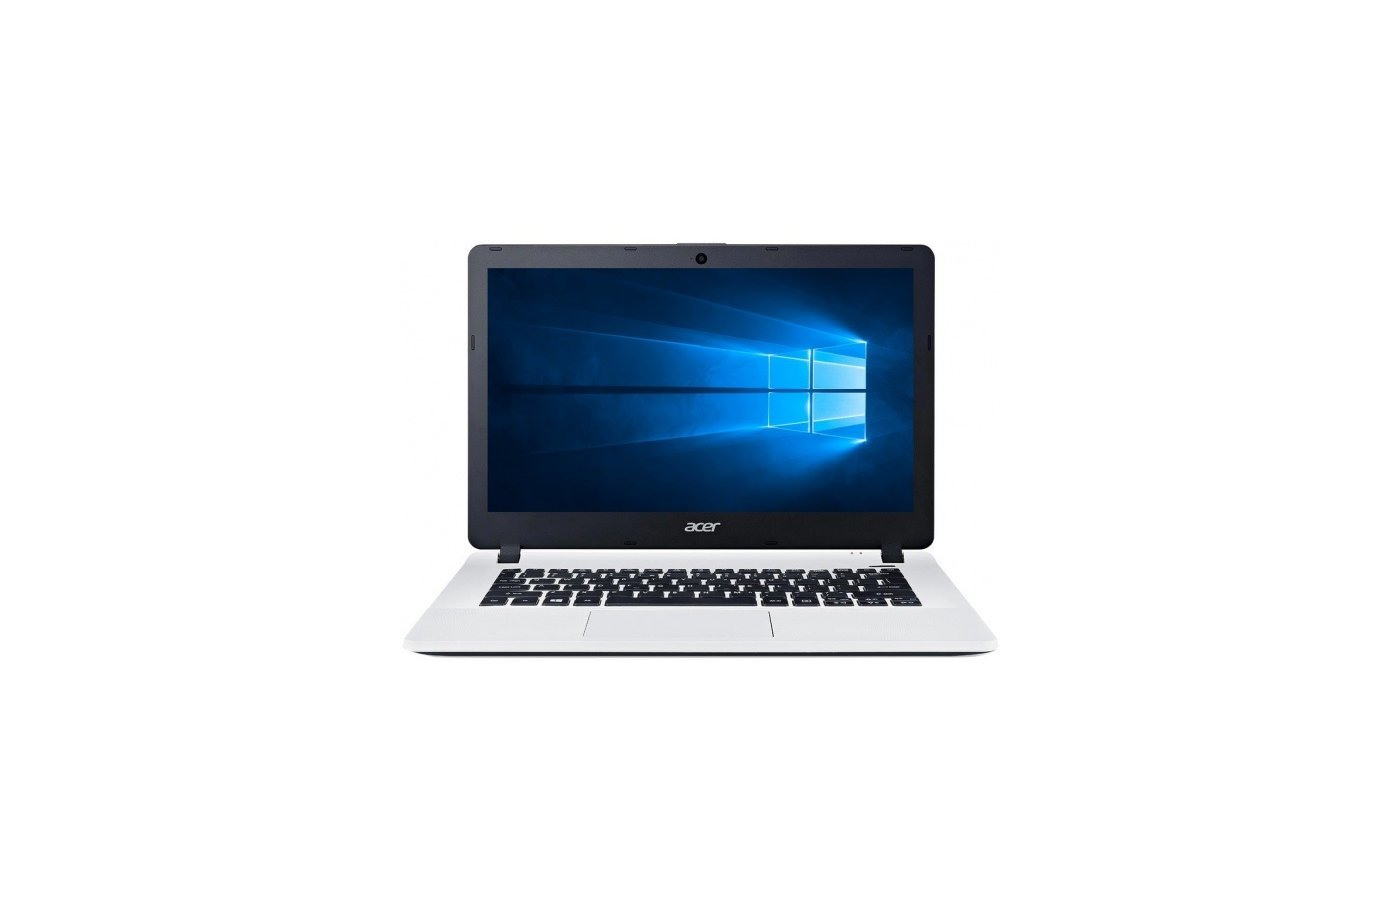 Ноутбук Acer ES1-331-C4NZ /NX.G18ER.002/ intel N3050/2Gb/SSD32Gb/13.3/WiFi/BT/Win10/ White